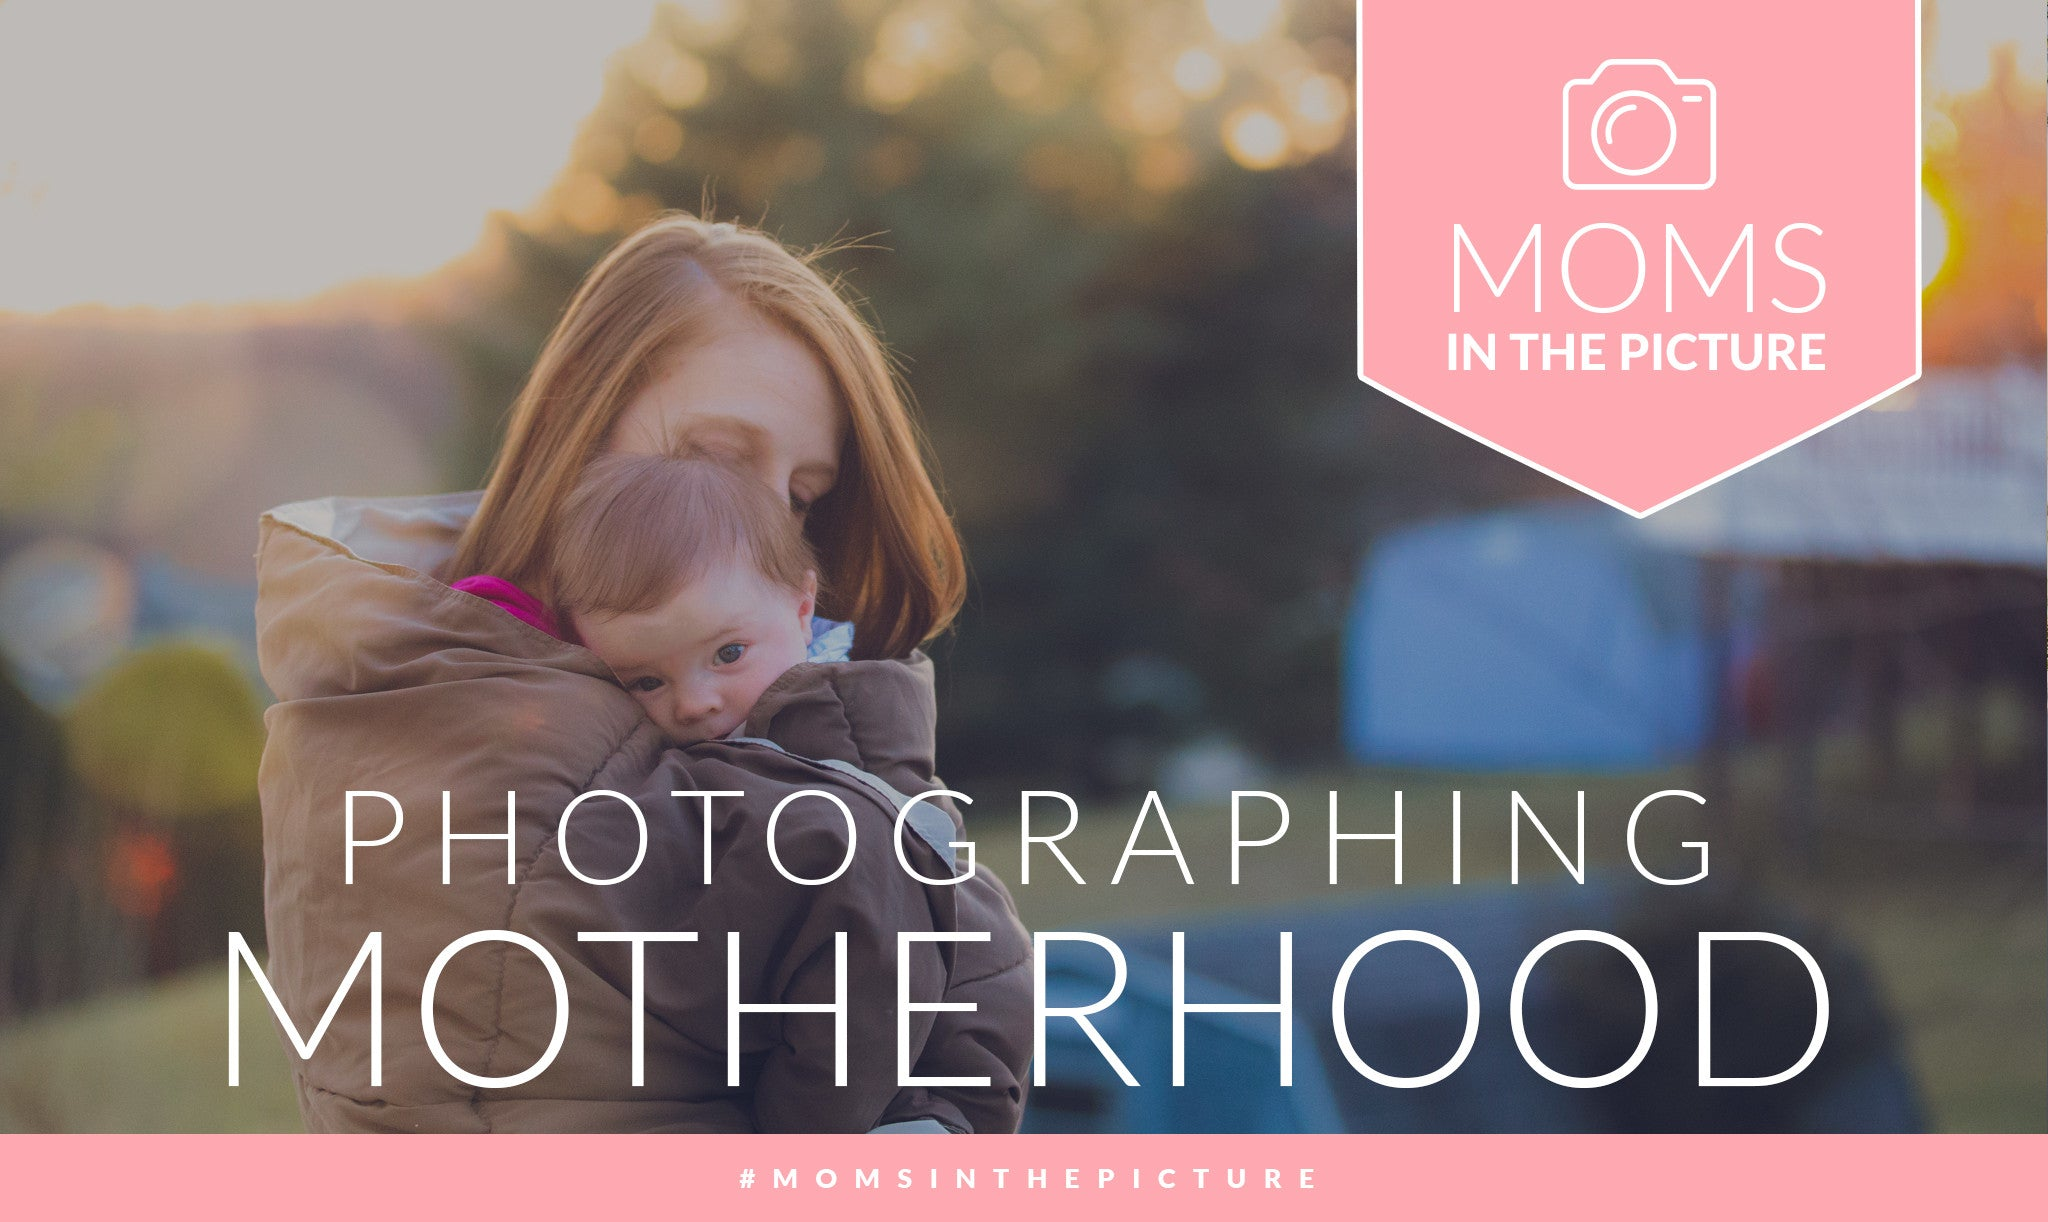 Mom's in the Picture—Photographing Motherhood